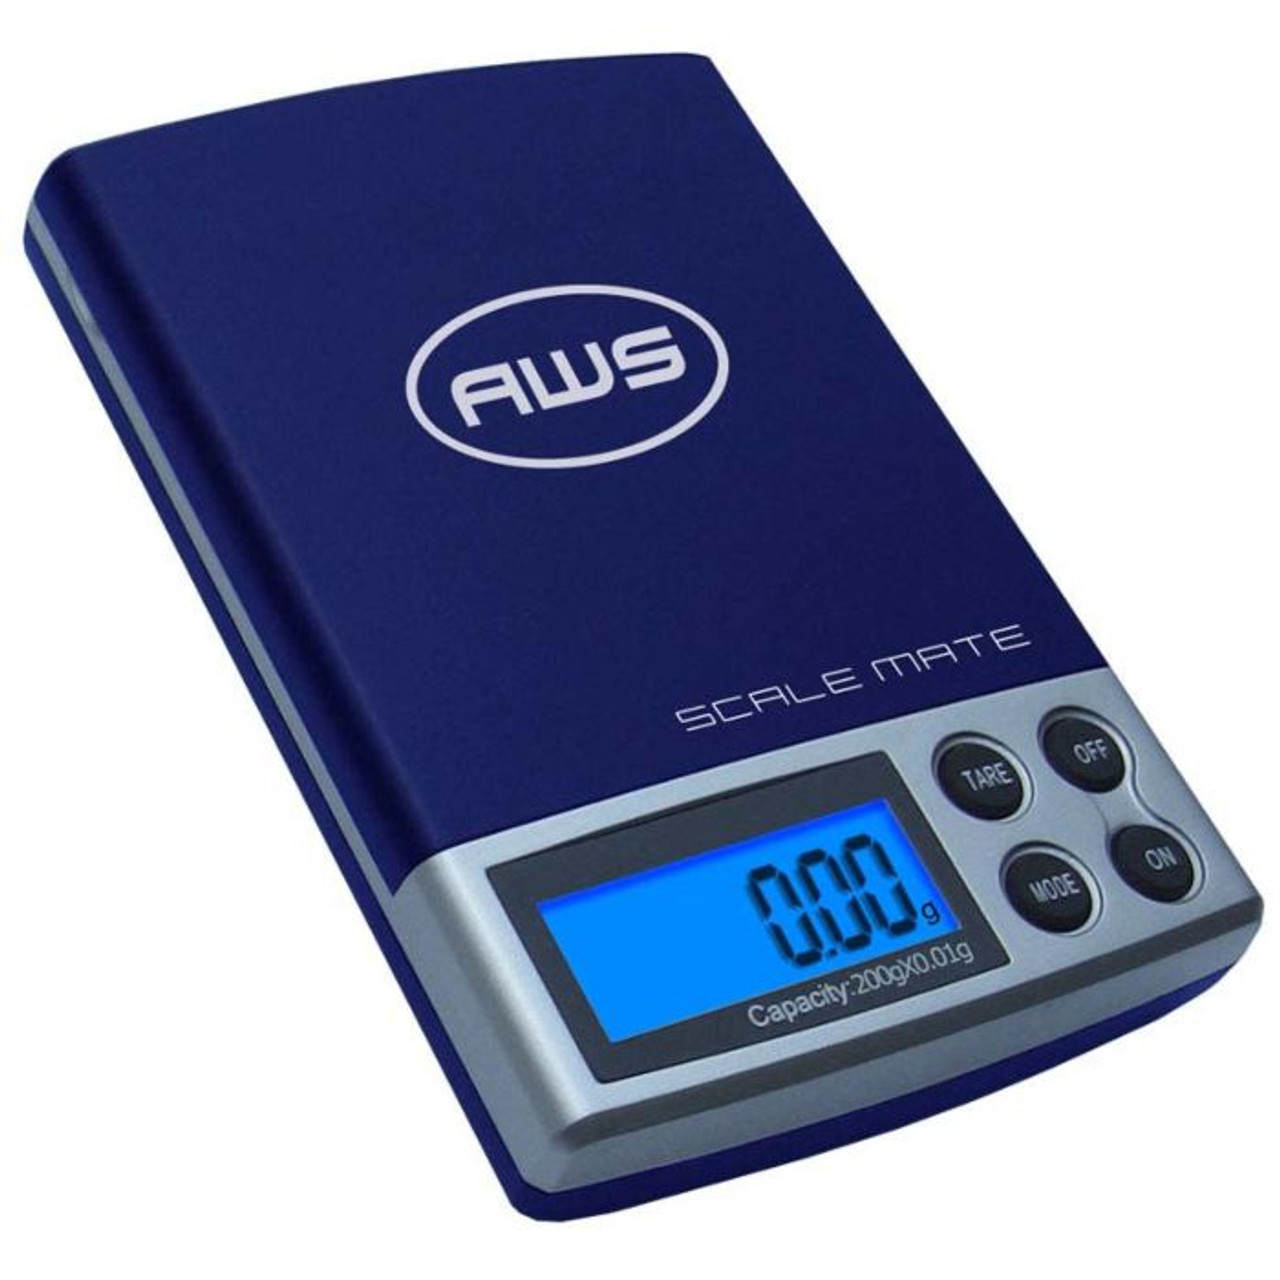 Digital Scale Measuring Triton T3 Digital Weighing 660g x 0.01g Accuracy NEW